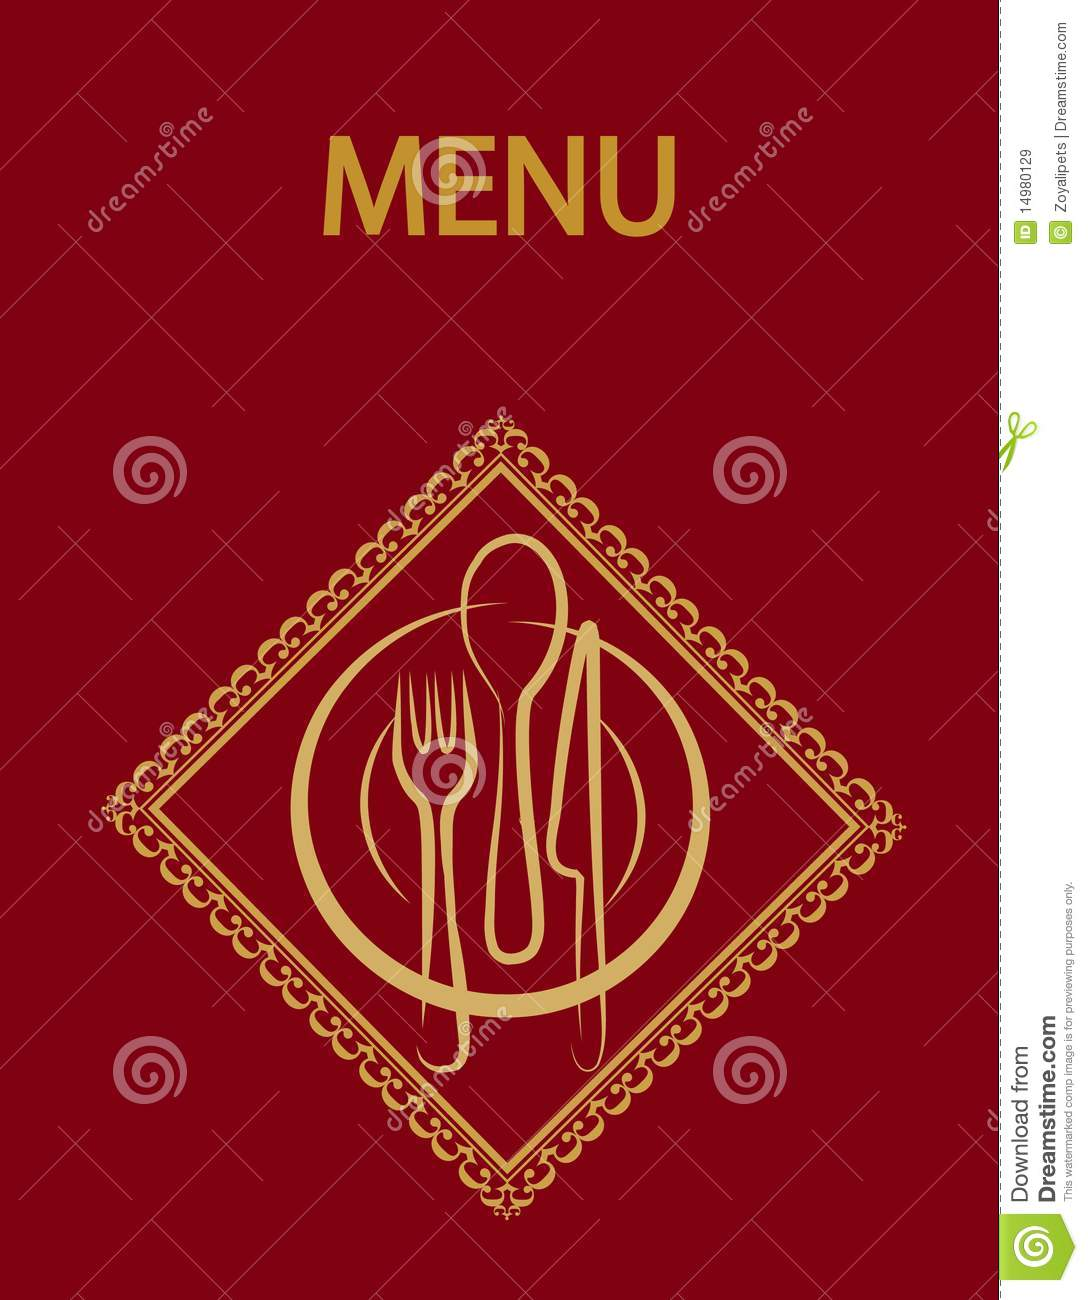 Restaurant Menu Design With Red Background-2 Royalty Free